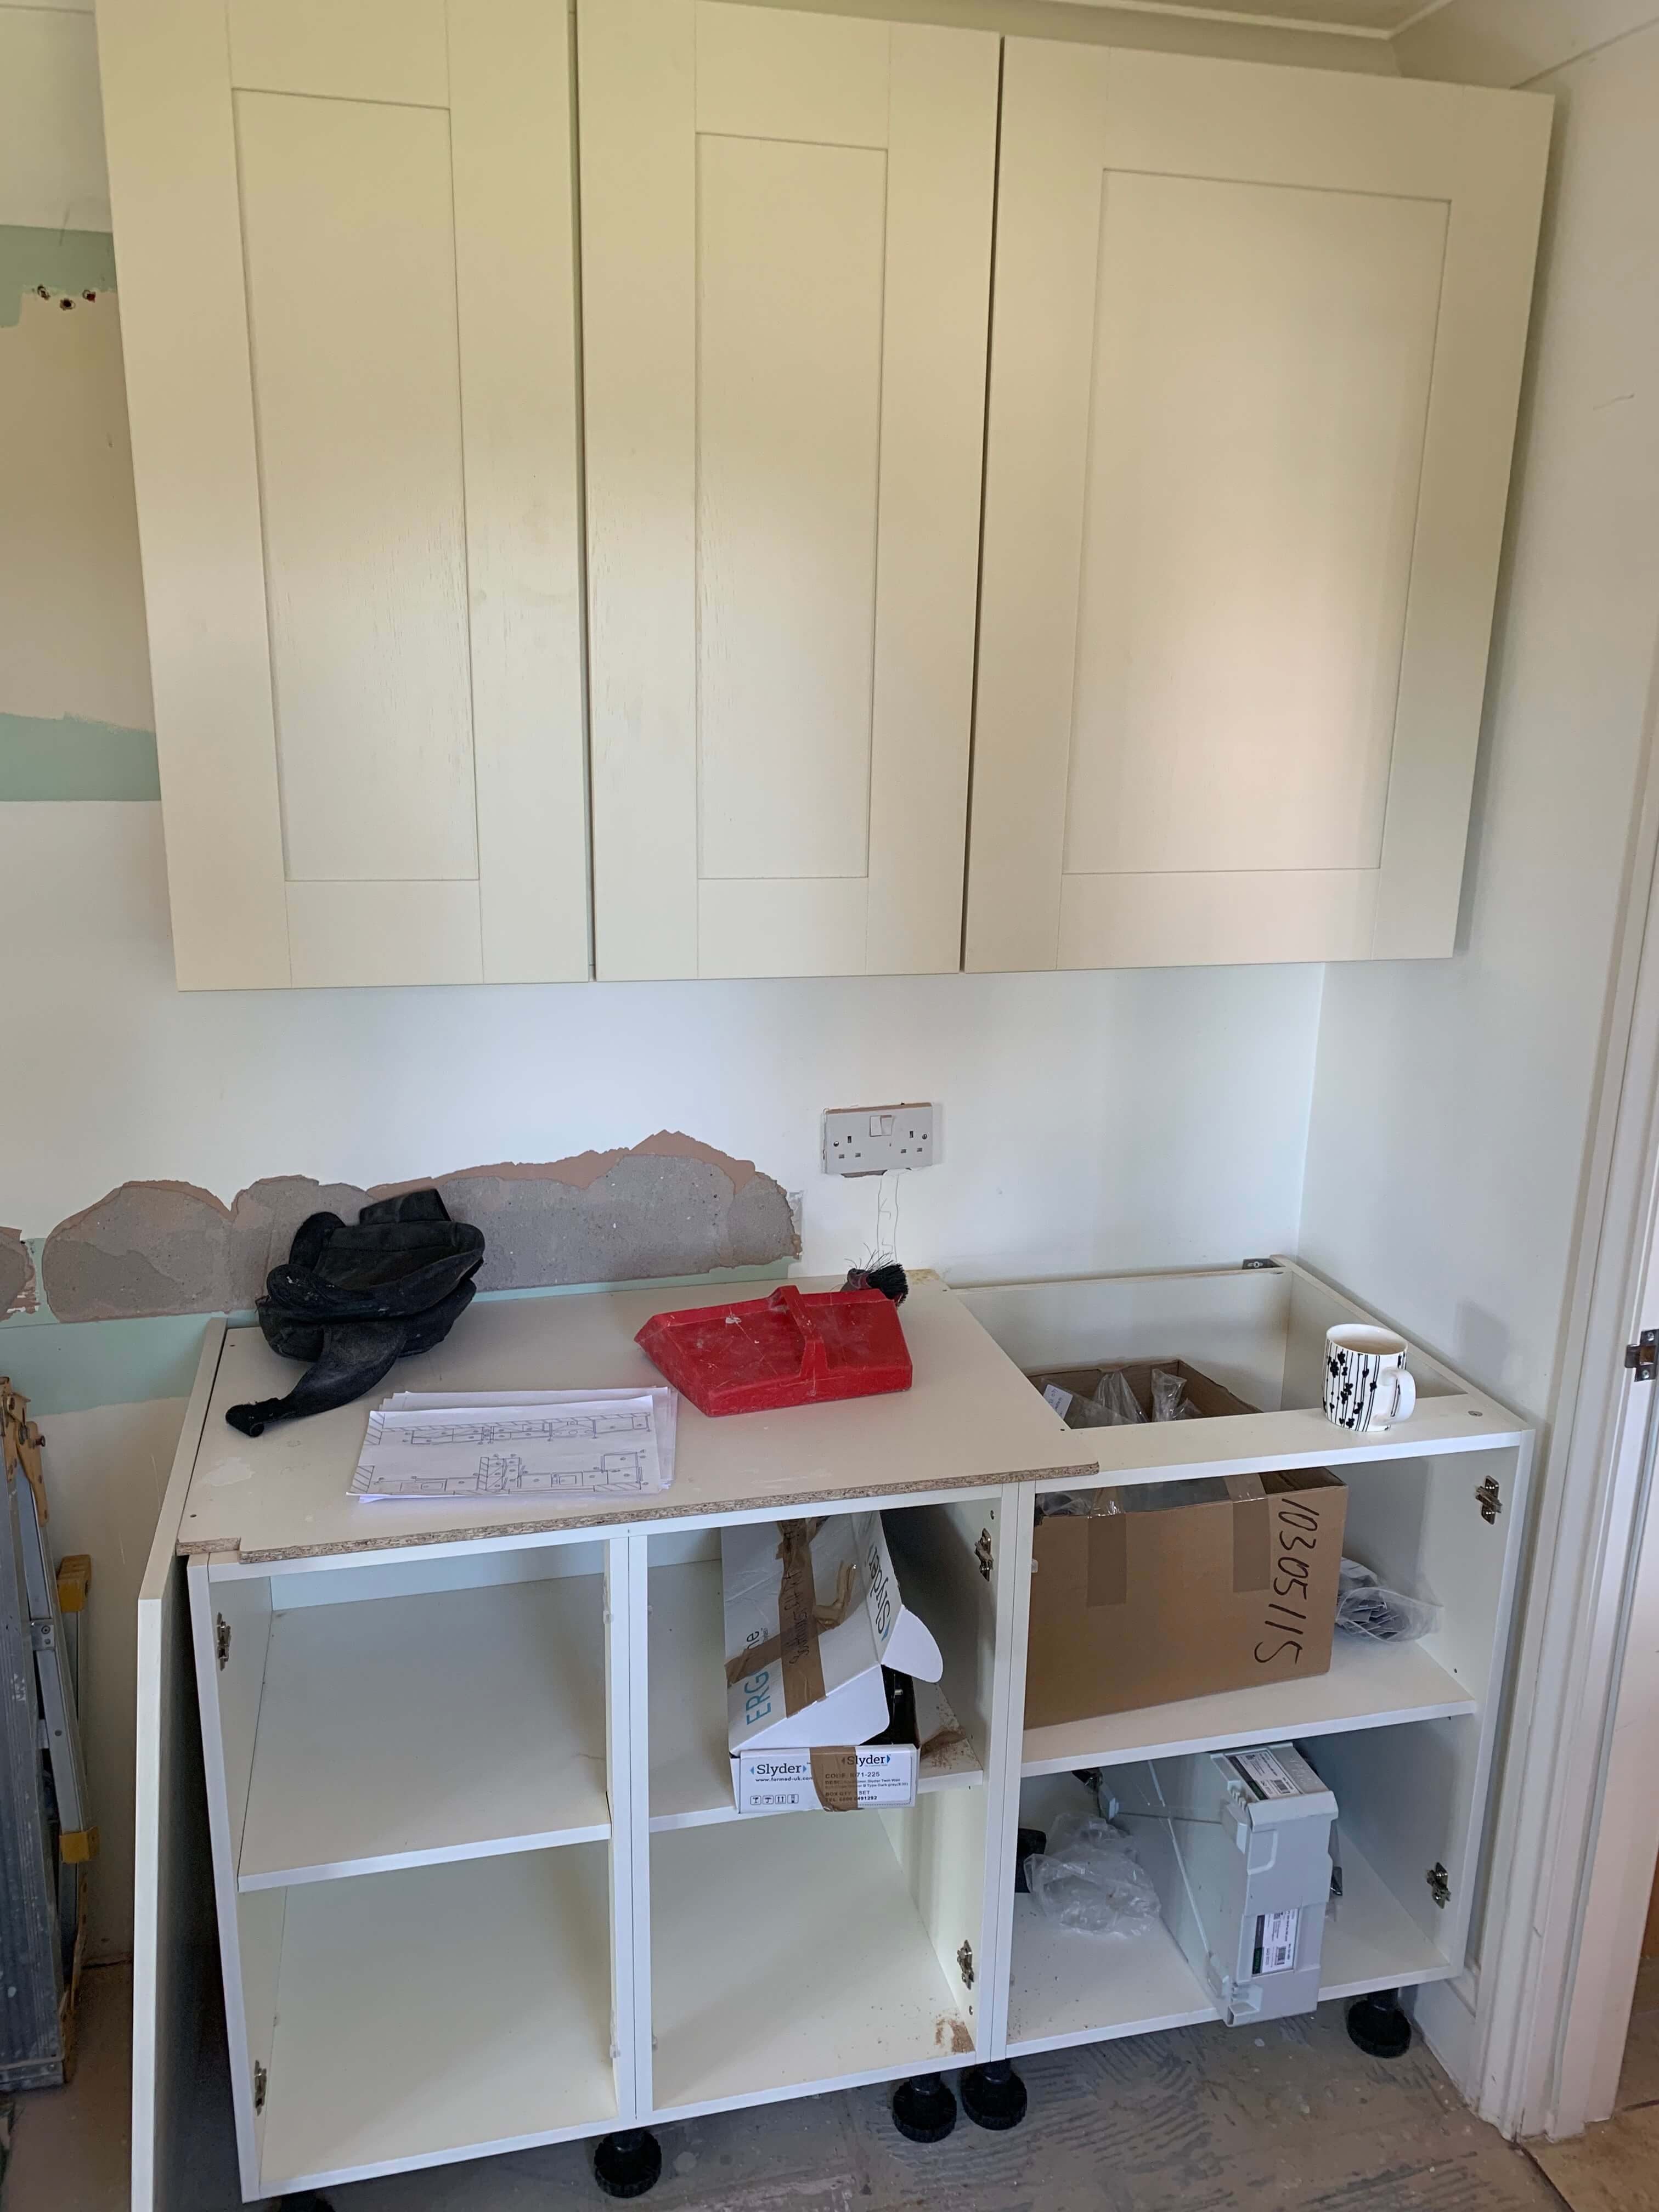 Wall units are fitted in the utility